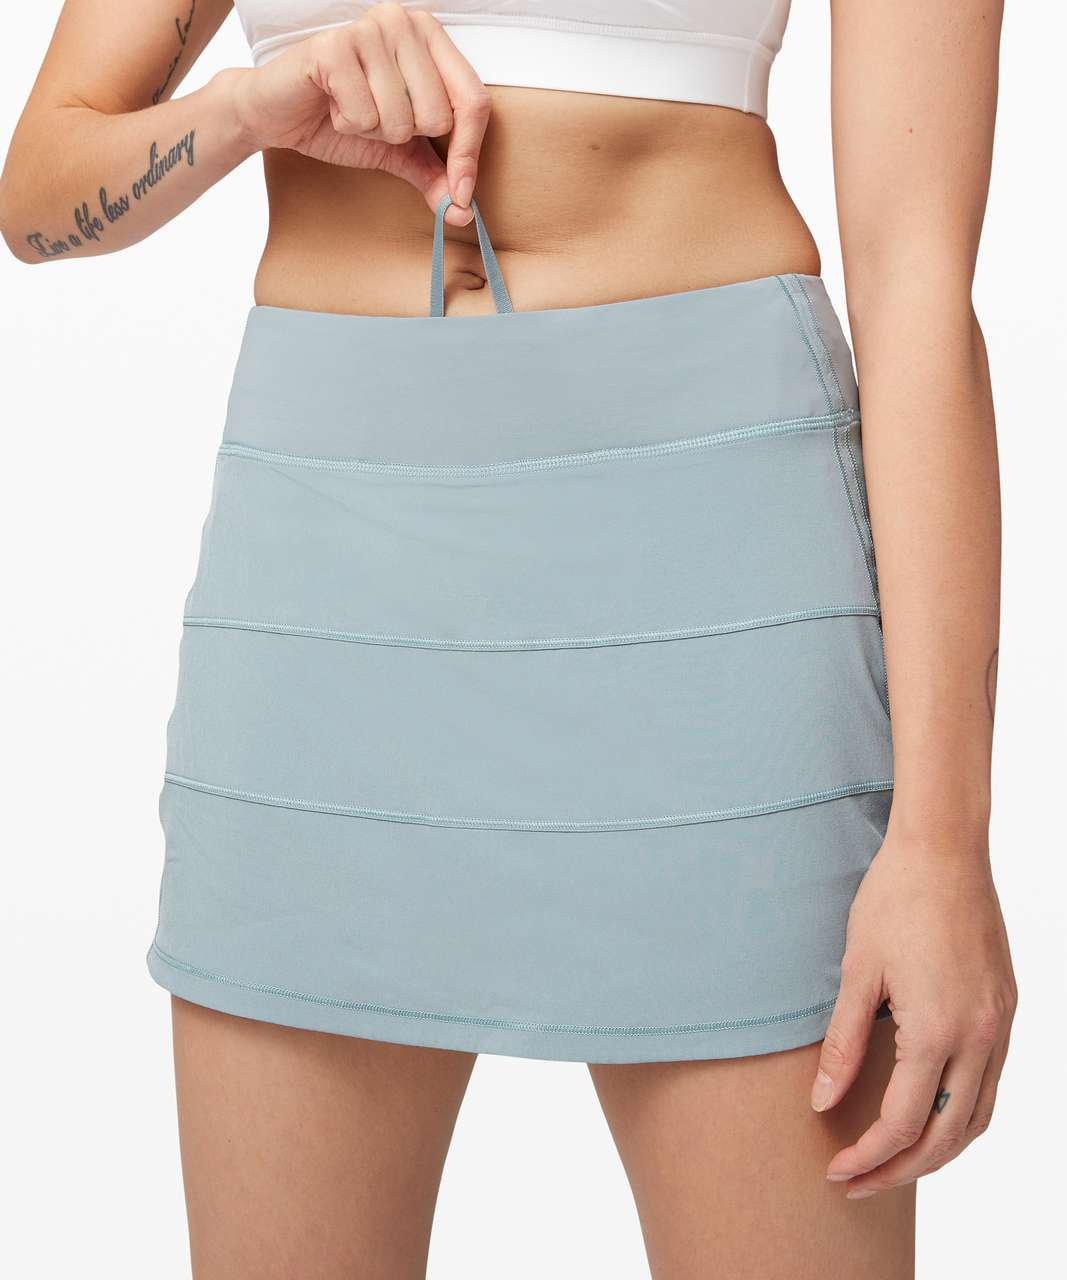 "Lululemon Pace Rival Skirt (Tall) *4-way Stretch 15"" - Blue Cast"